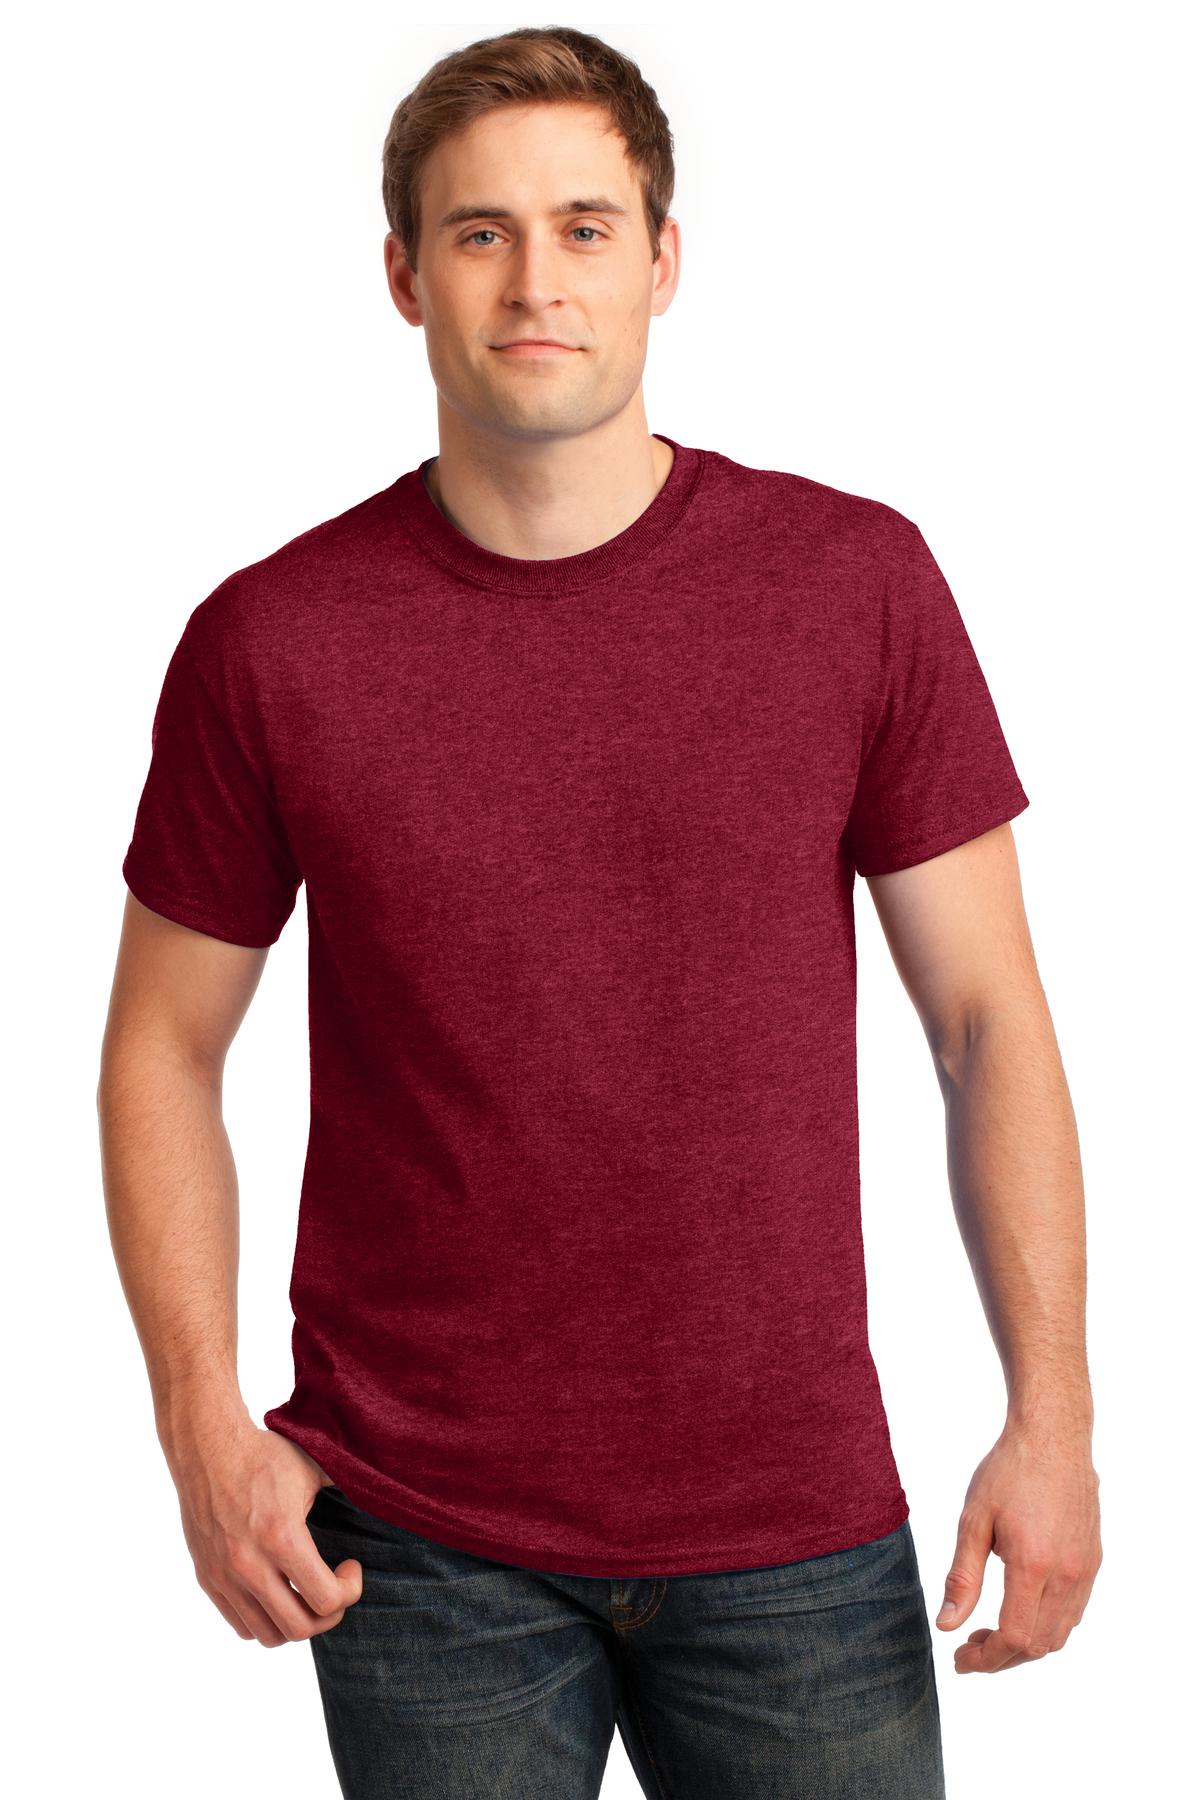 g200x Gildan 6.1 oz Ultra Cotton Heavyweight Tee 3x-4x